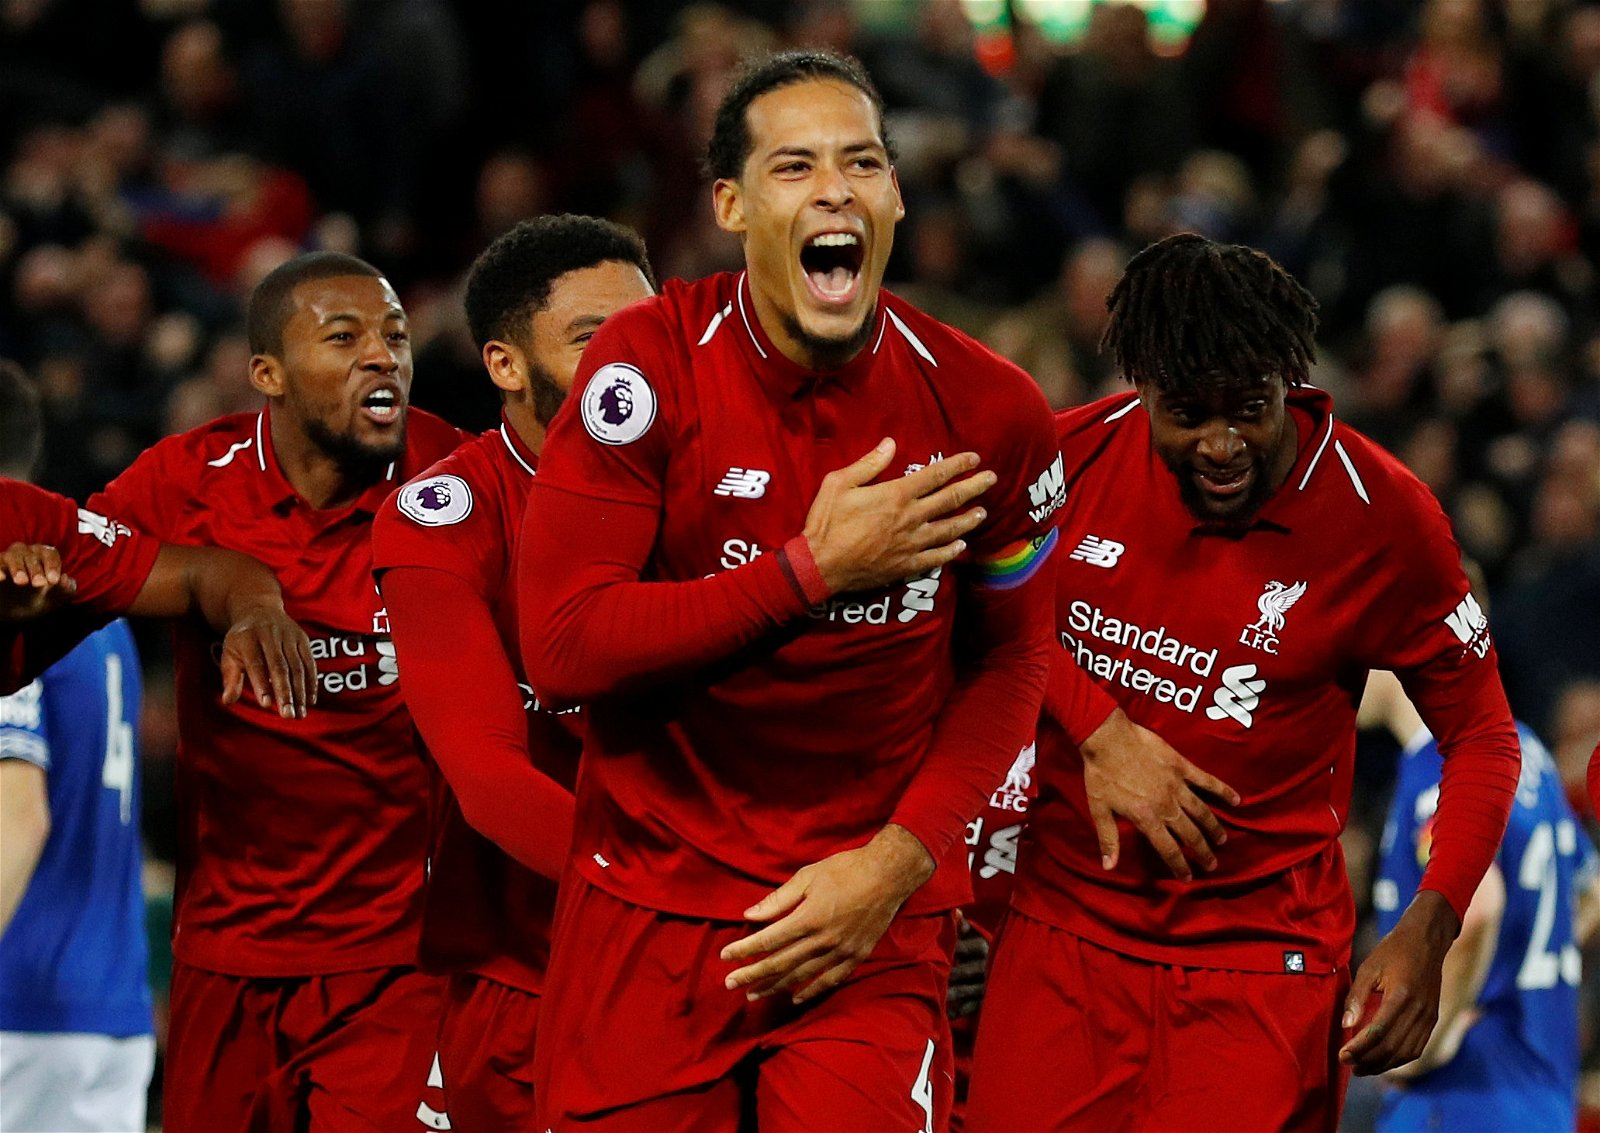 Van Dijk celebrates Origi's winner over Everton